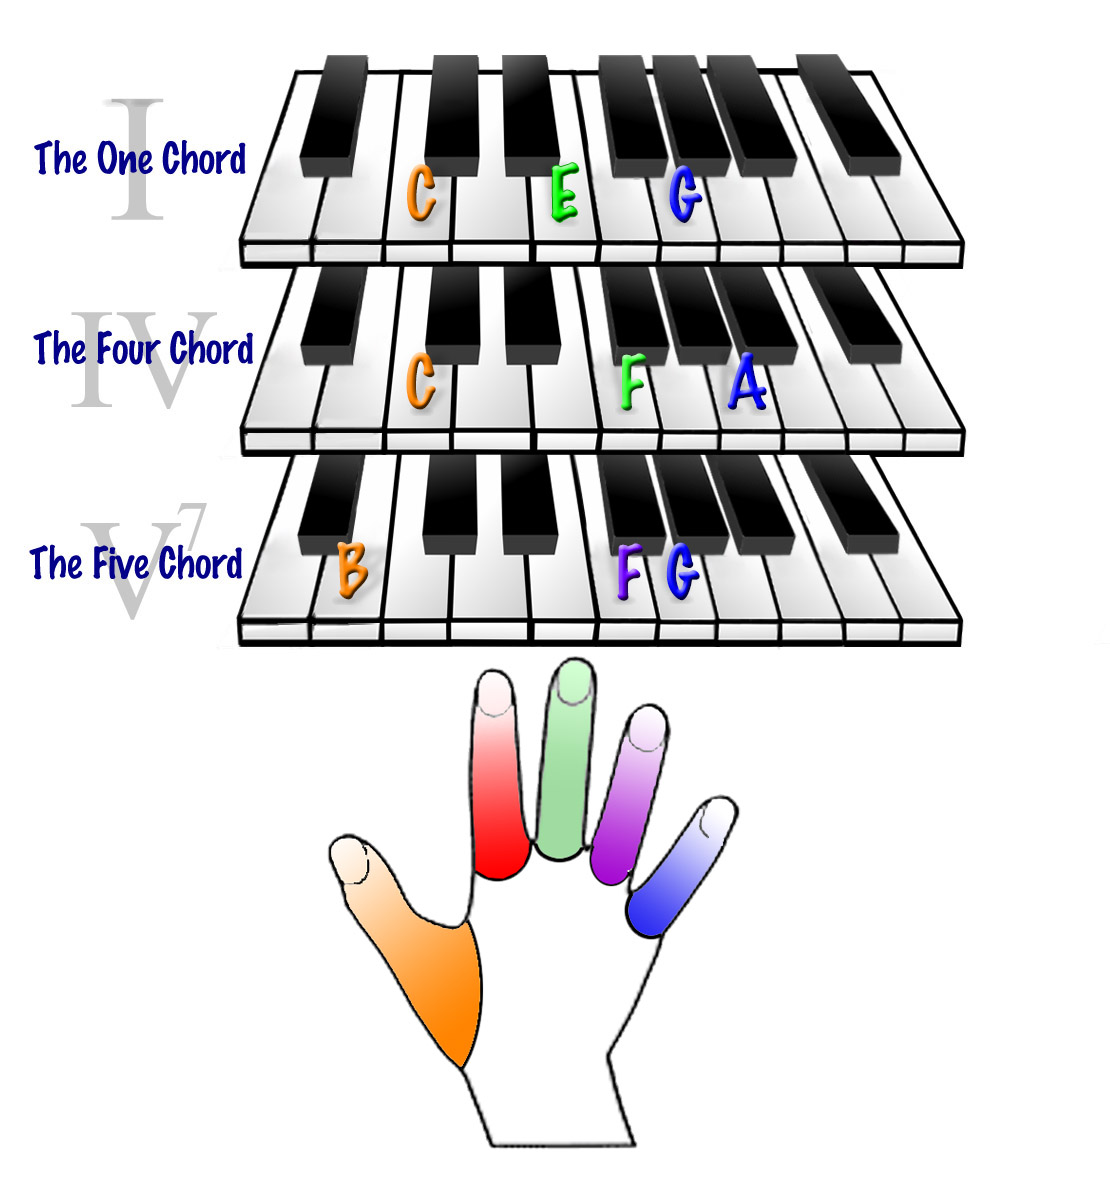 Edtechtales video integration part 2 do not move onto the left hand chords until you can accurately play what is in the video click on the picture for an enlarged view hexwebz Gallery